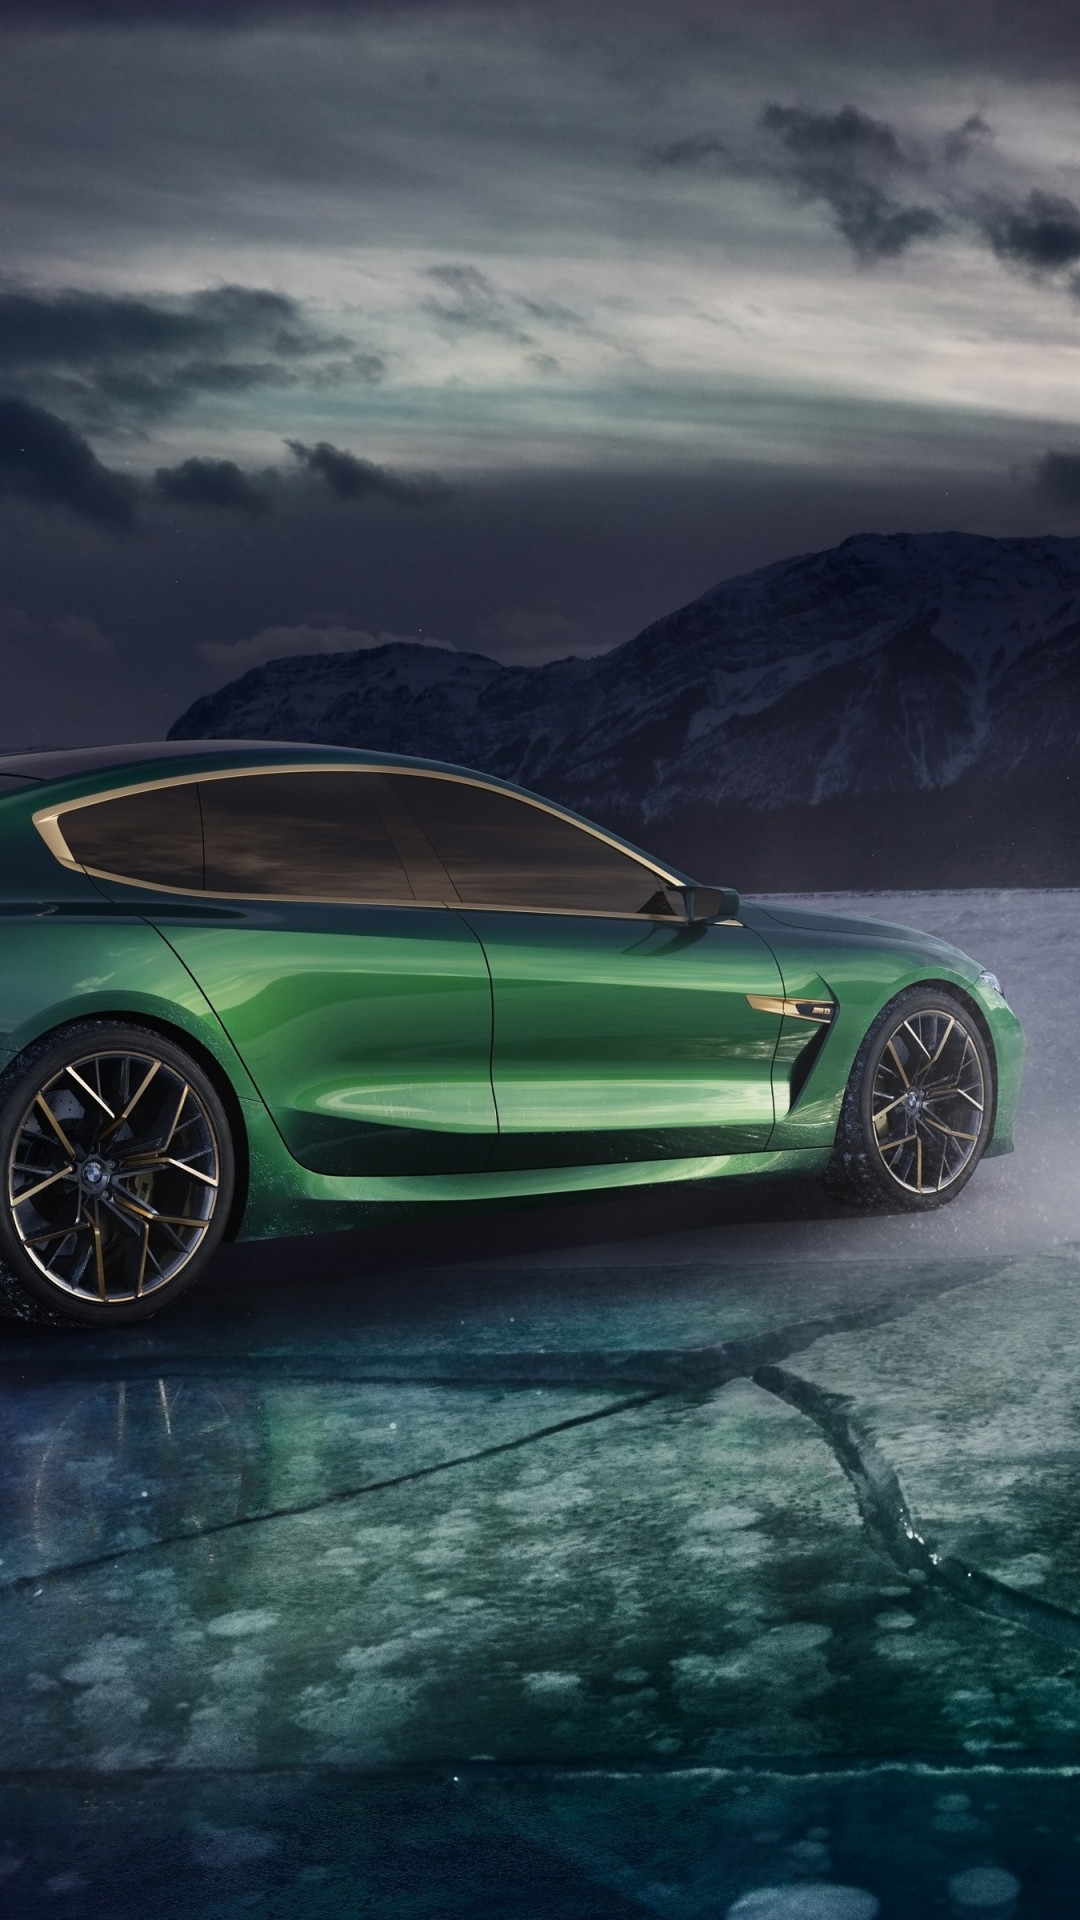 BMW Concept M8 Gran Coupe 2018 rear side wallpaper 1080x1920